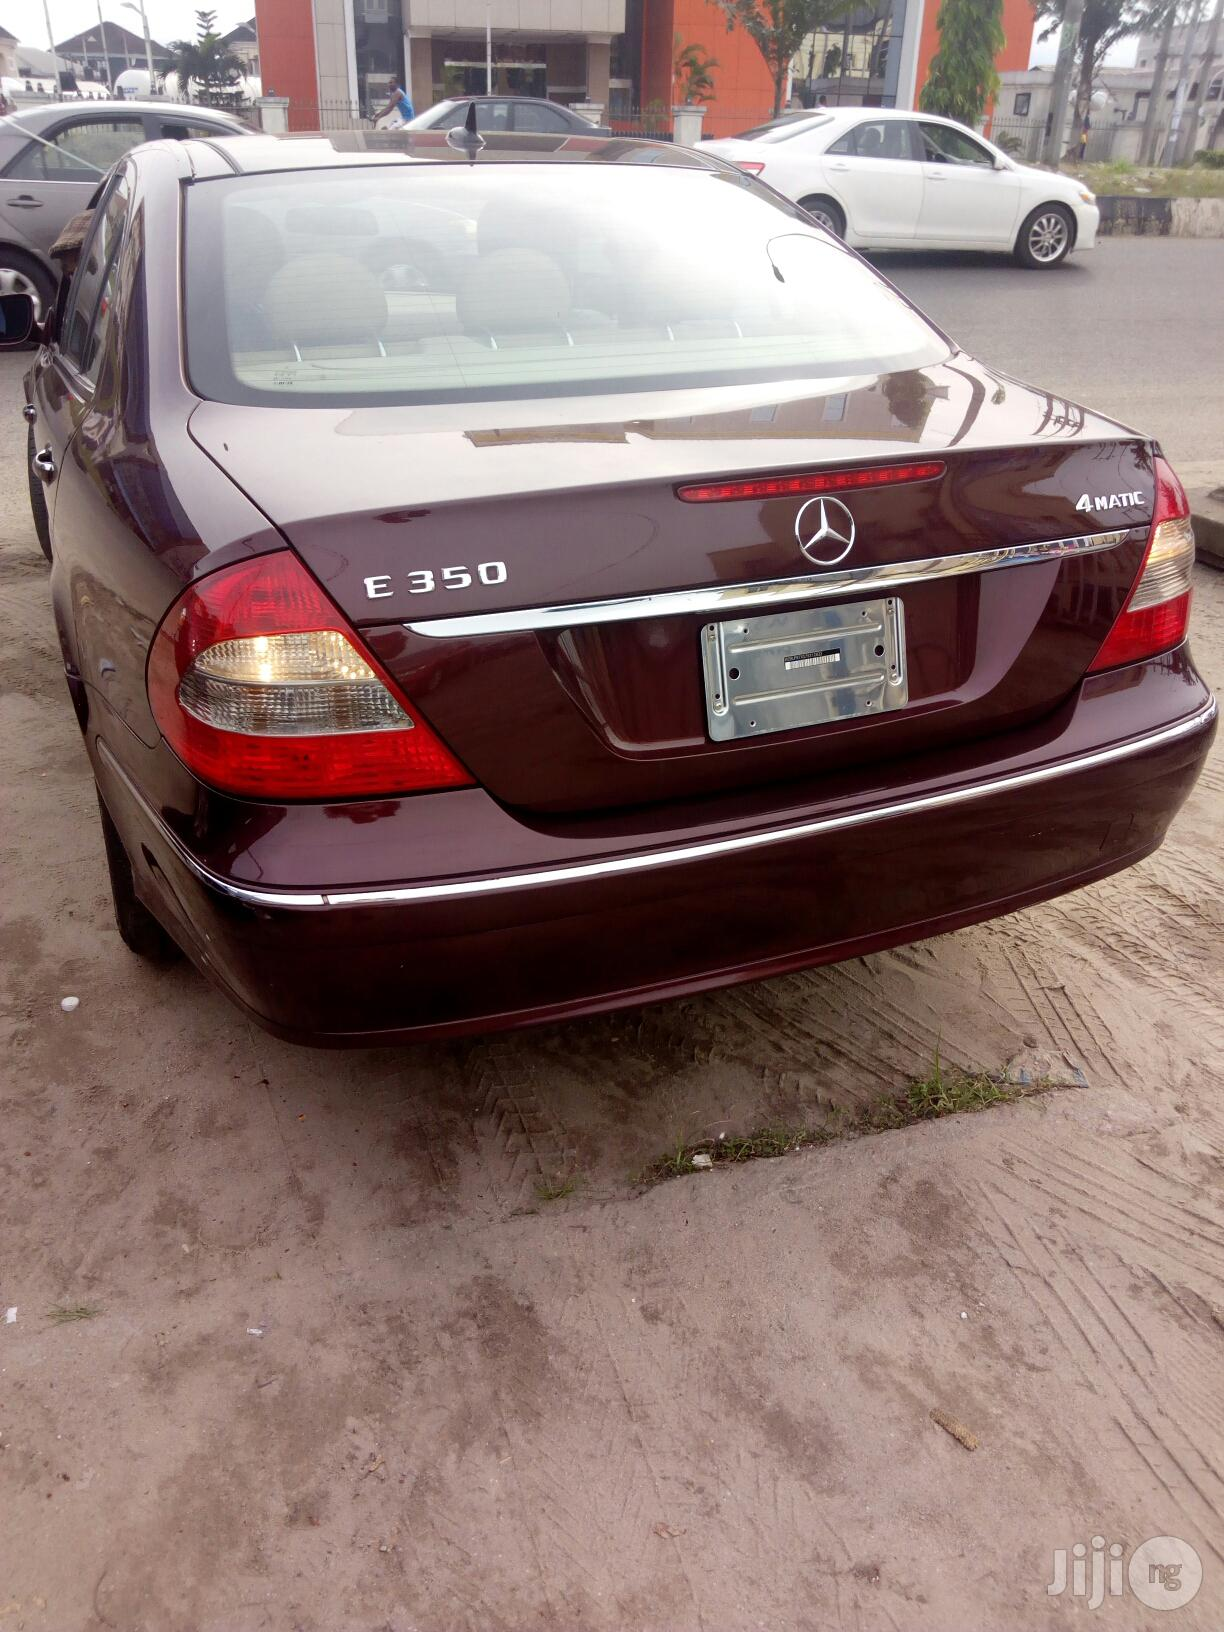 Mercedes-Benz E350 2008 Red | Cars for sale in Port-Harcourt, Rivers State, Nigeria